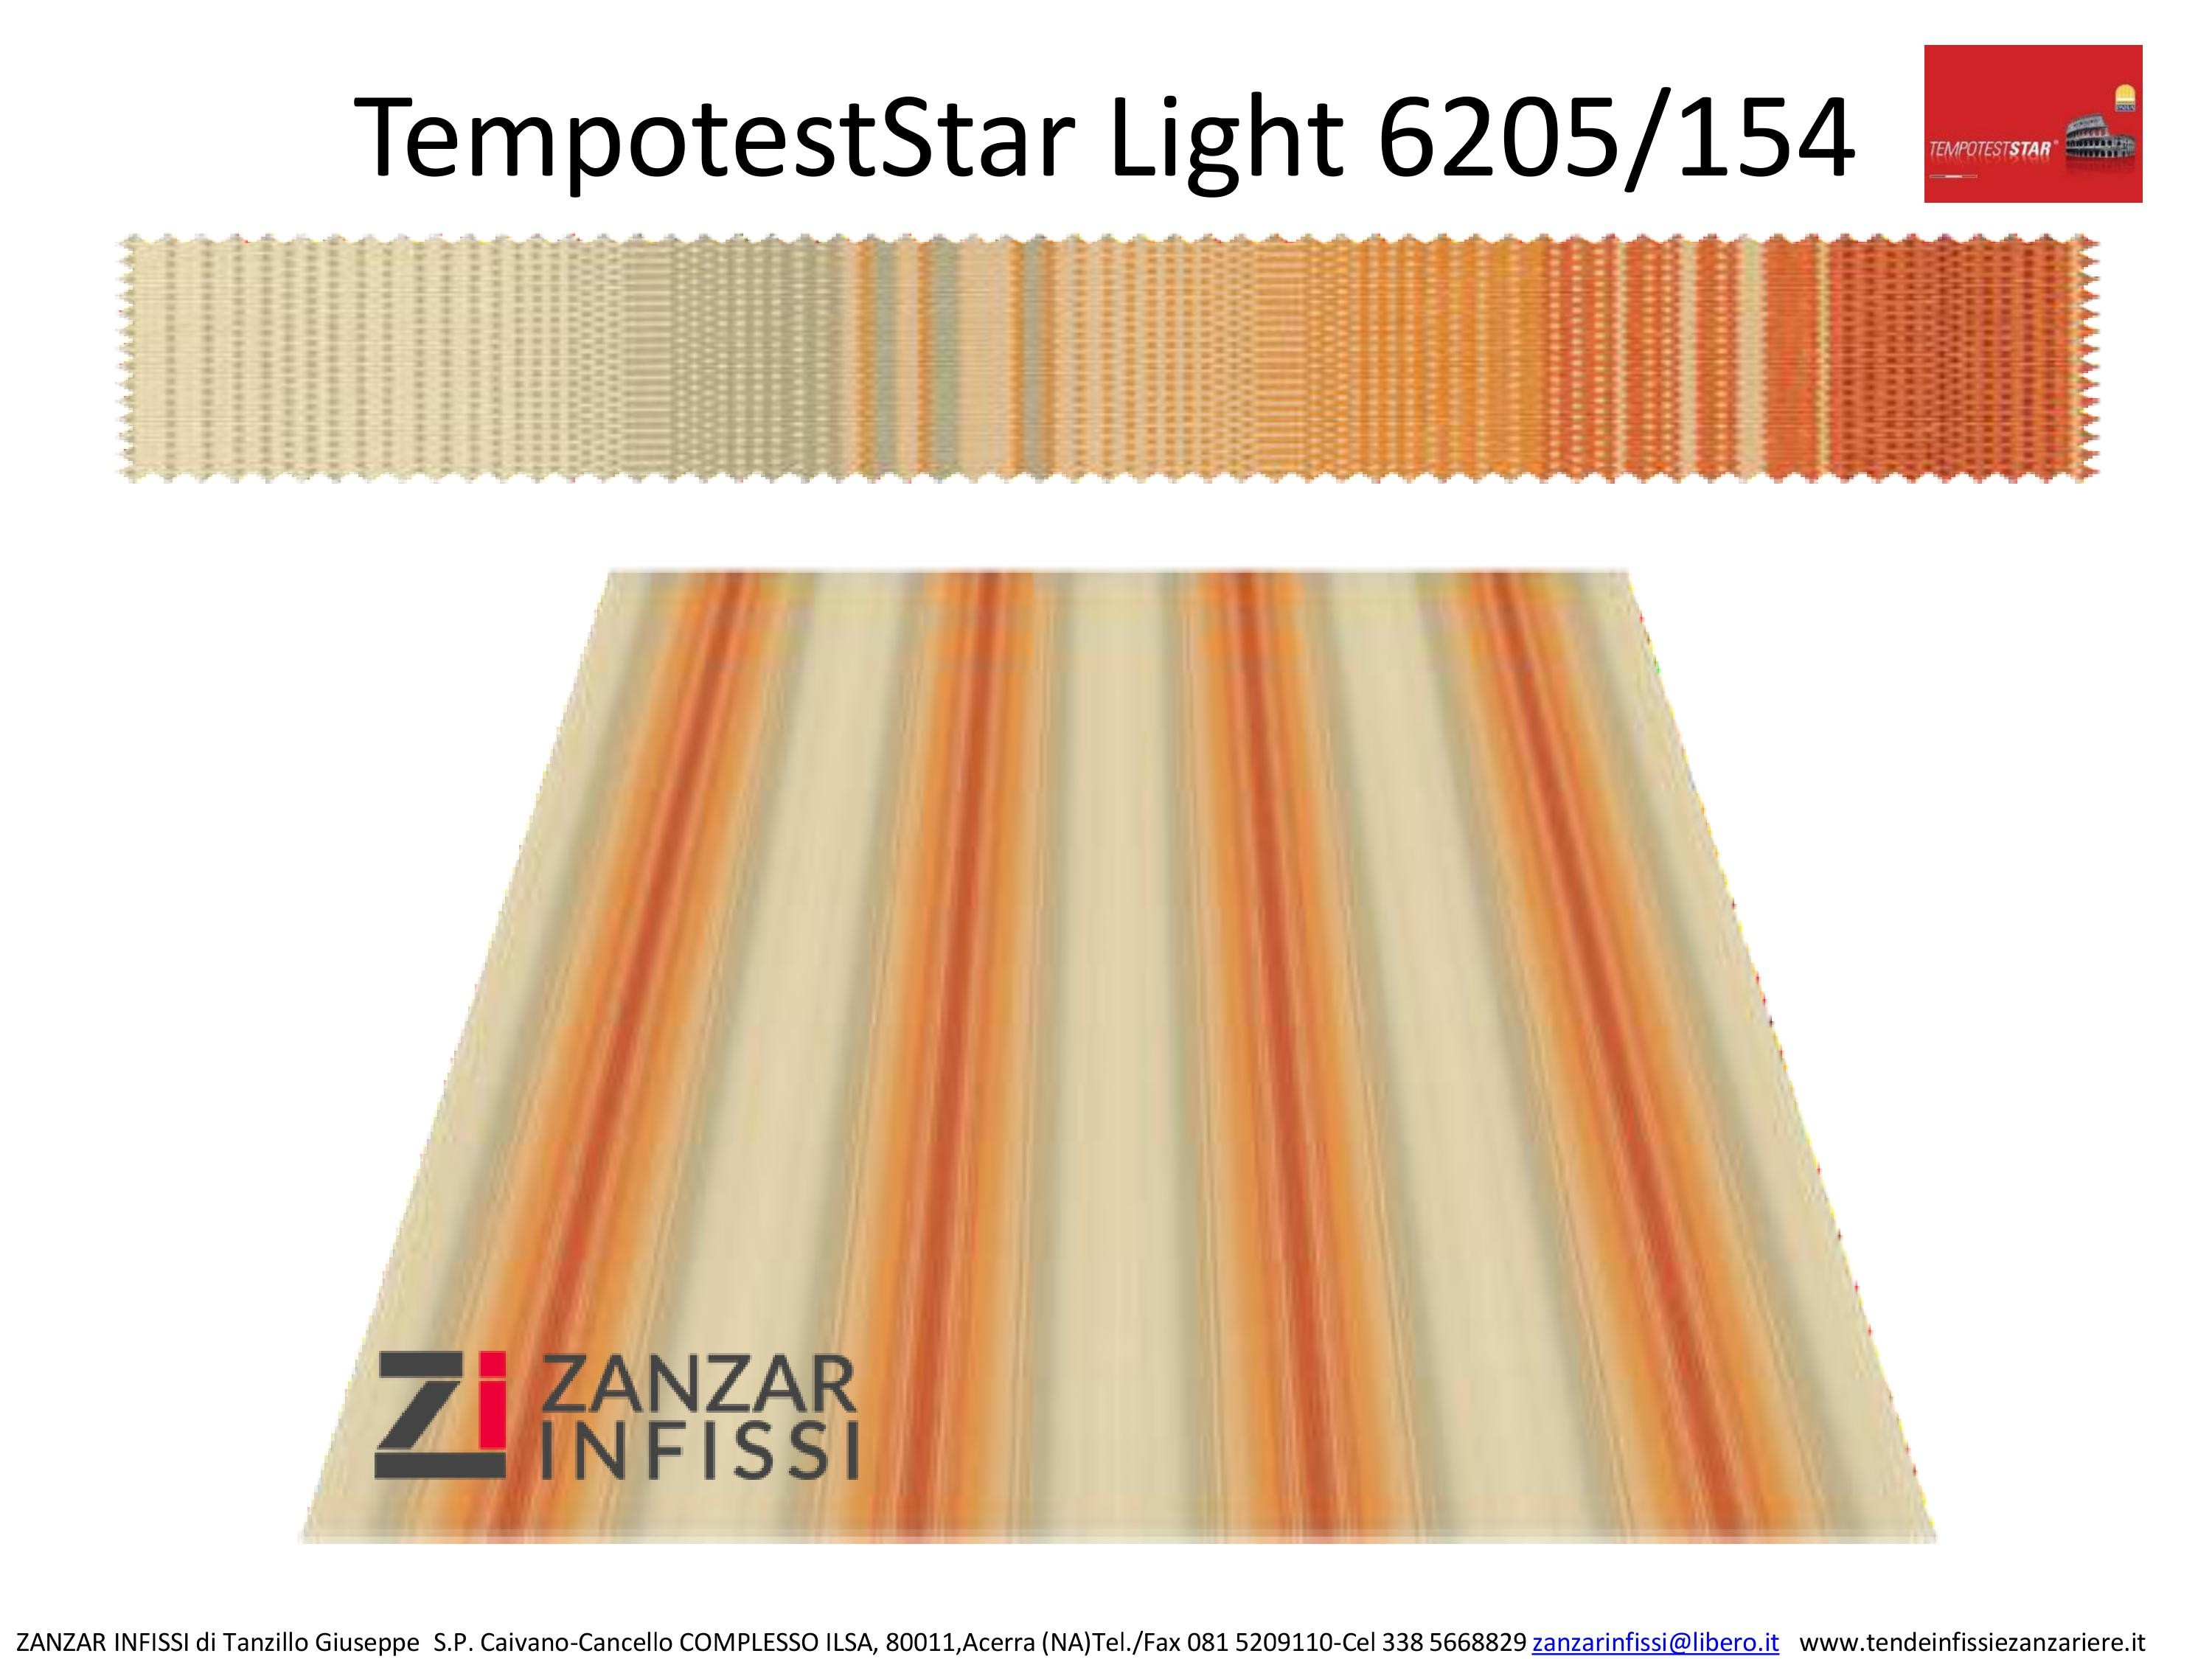 Tempotest star light 6205/154